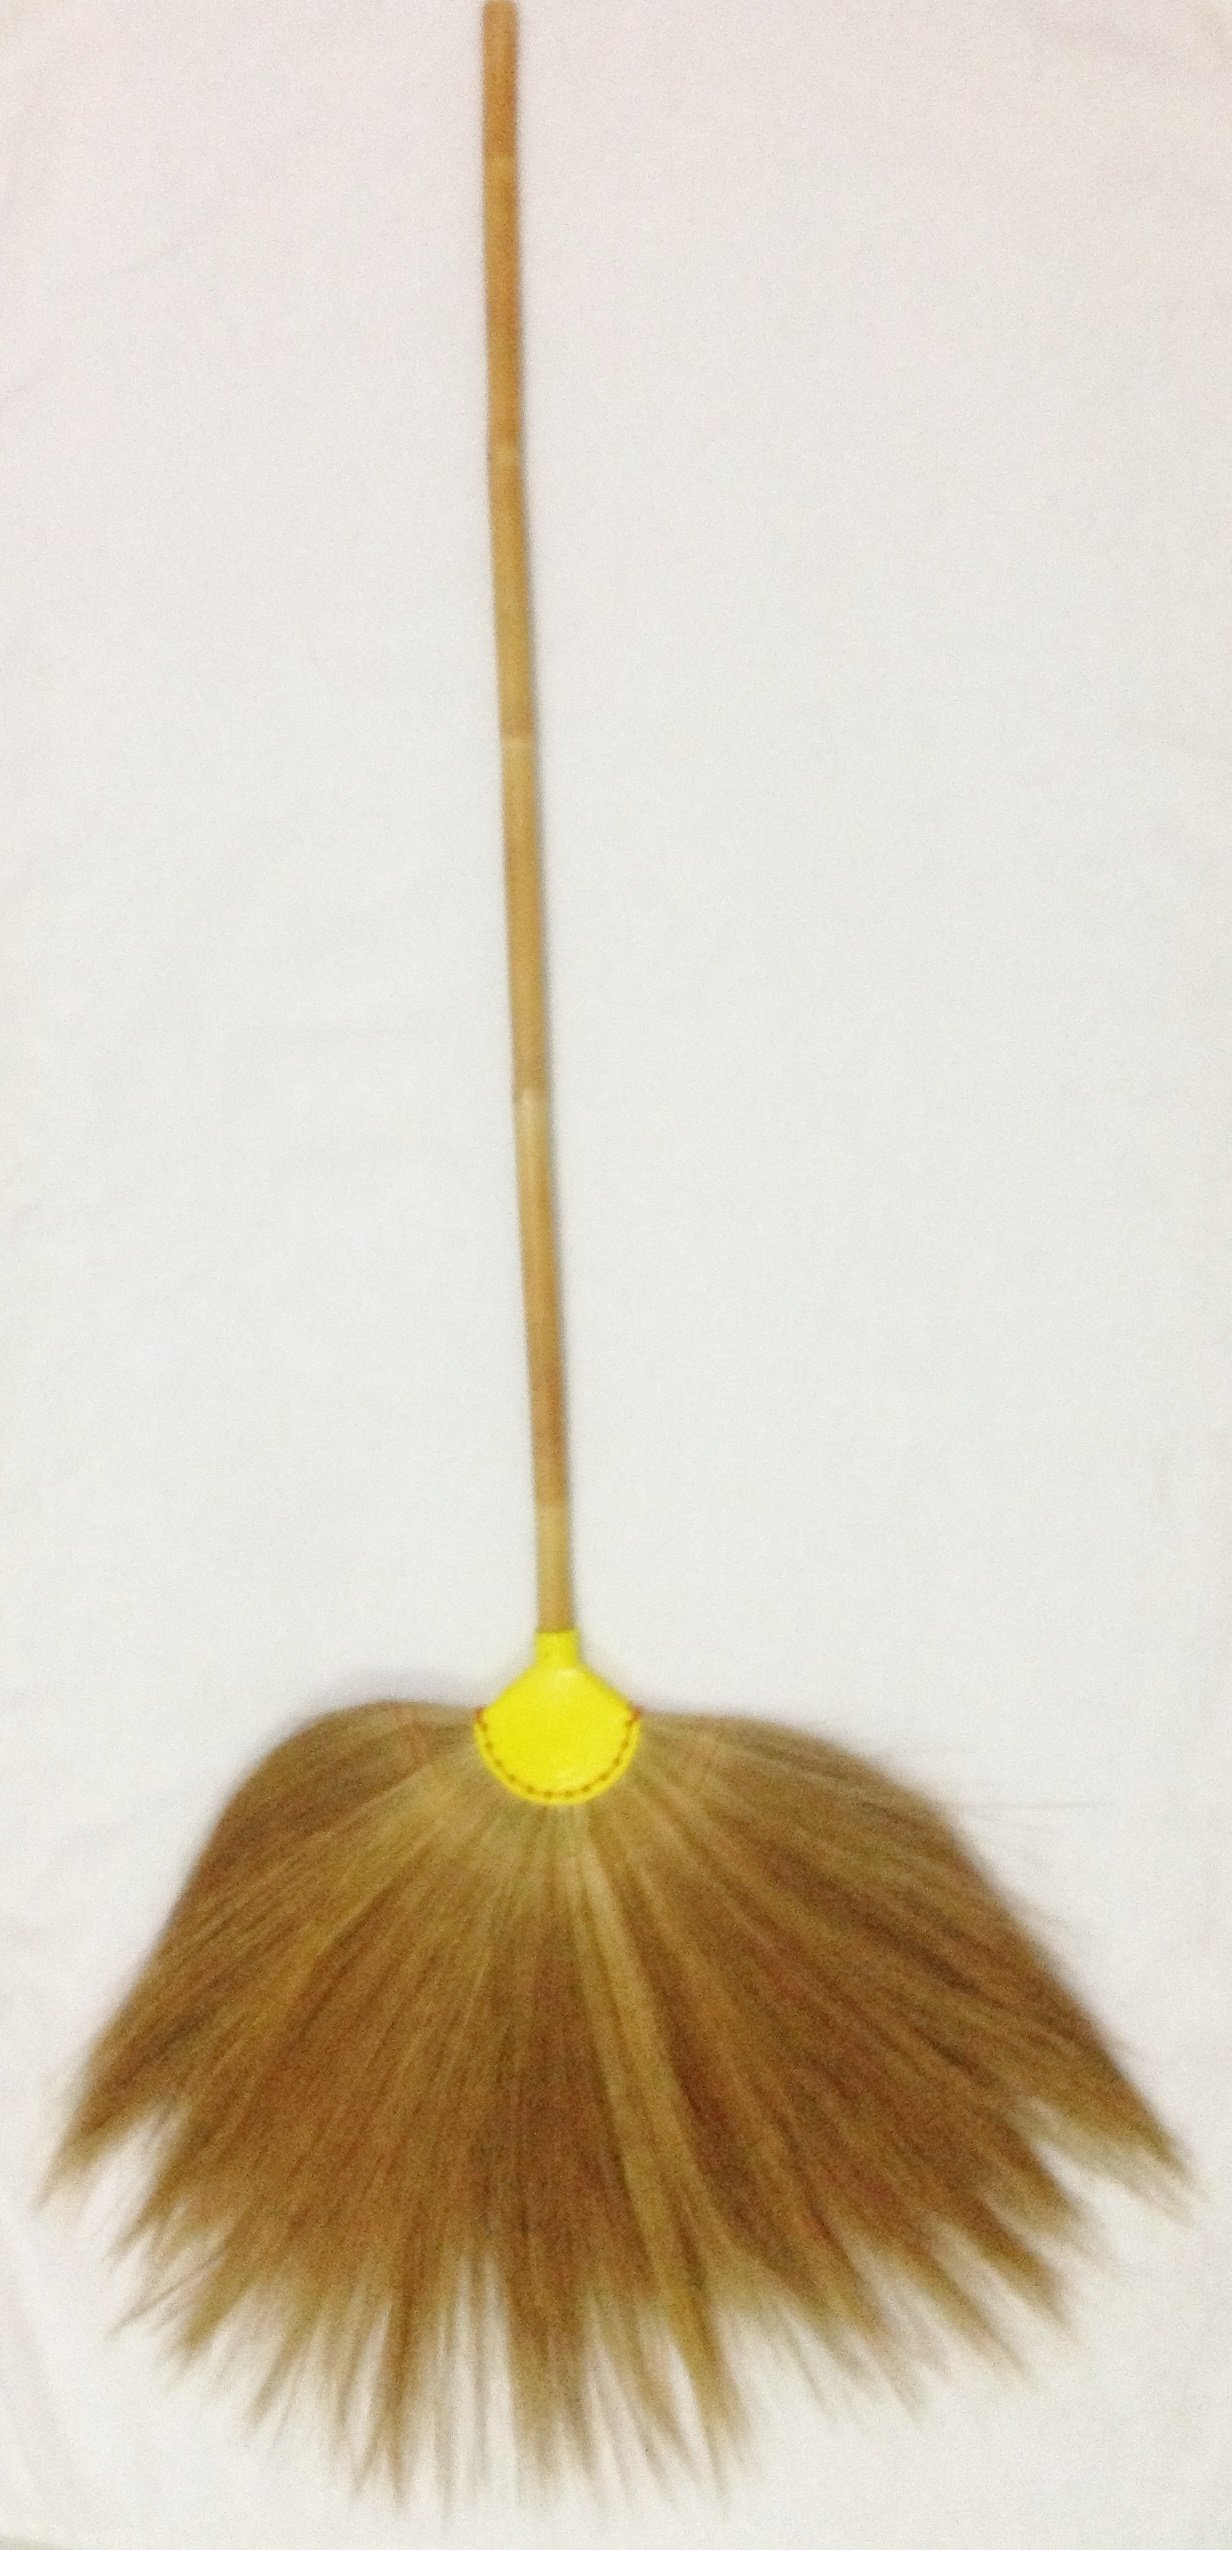 Broom Grass Bamboo Handle Natural Color by Thai OTOP